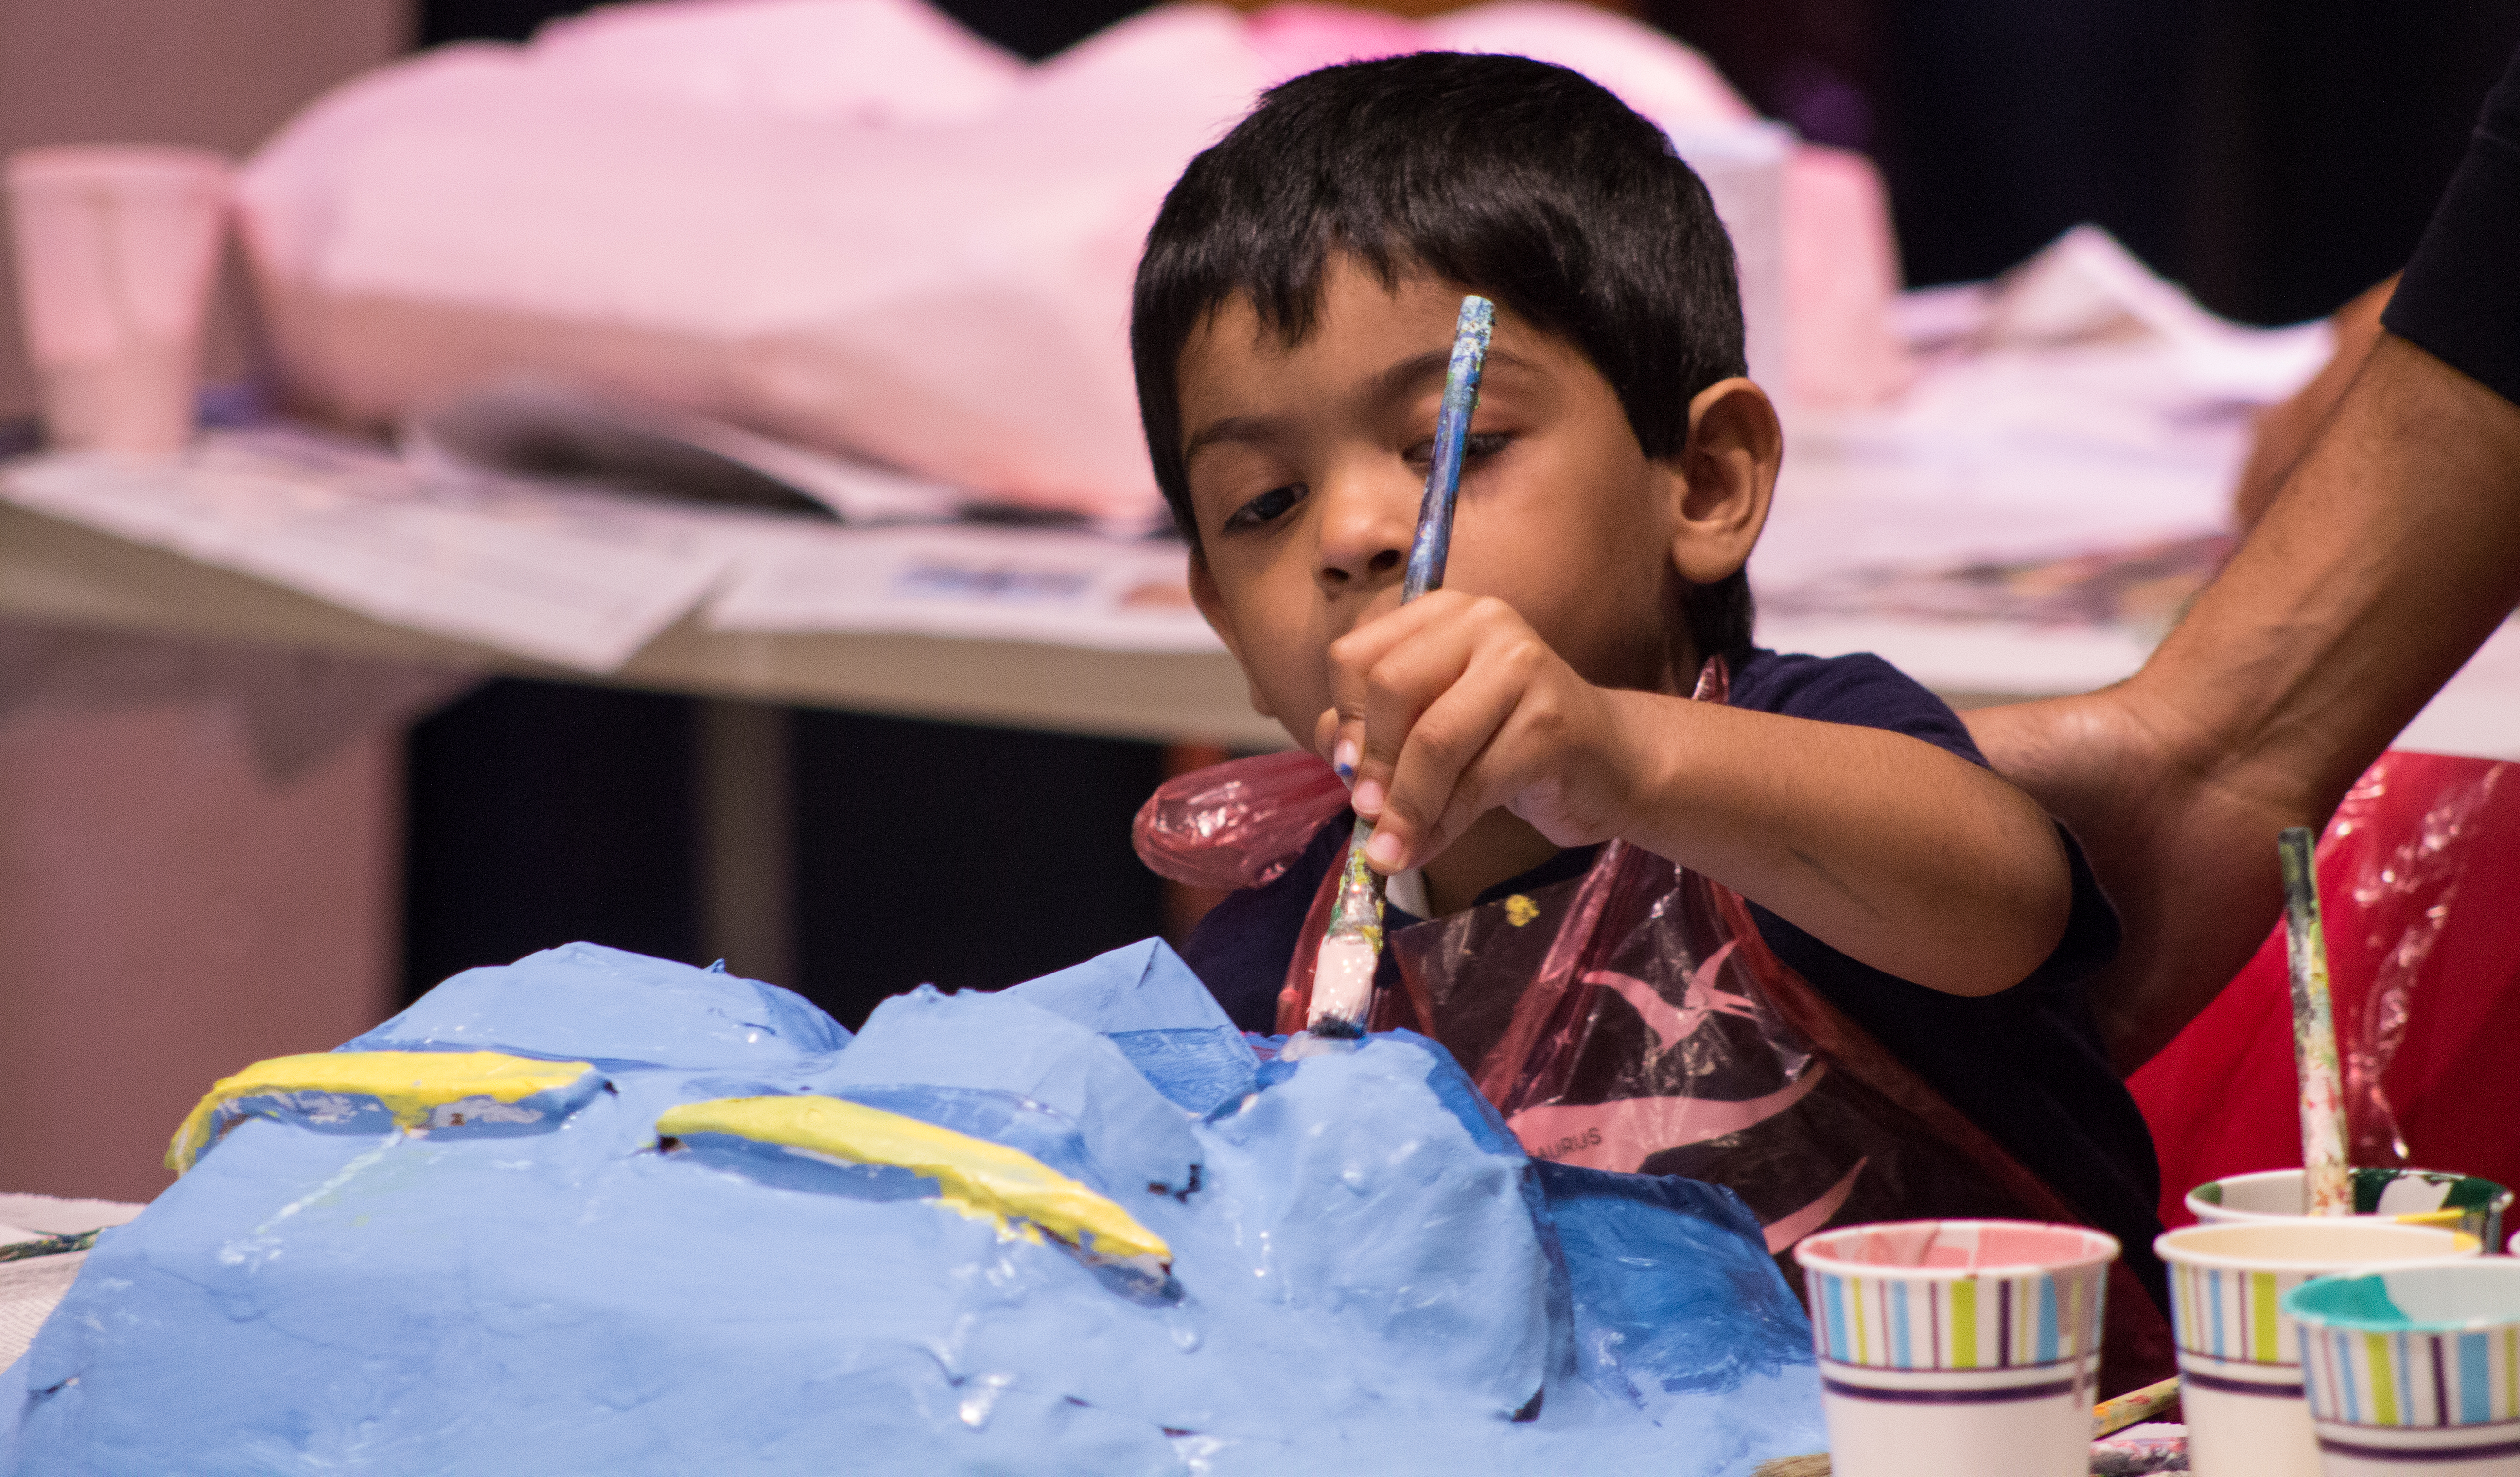 Aspiring young artist Nikhil, age 3, works on a façade of Game of Thrones' Daenerys Targaryen accompanied by his father Arun.